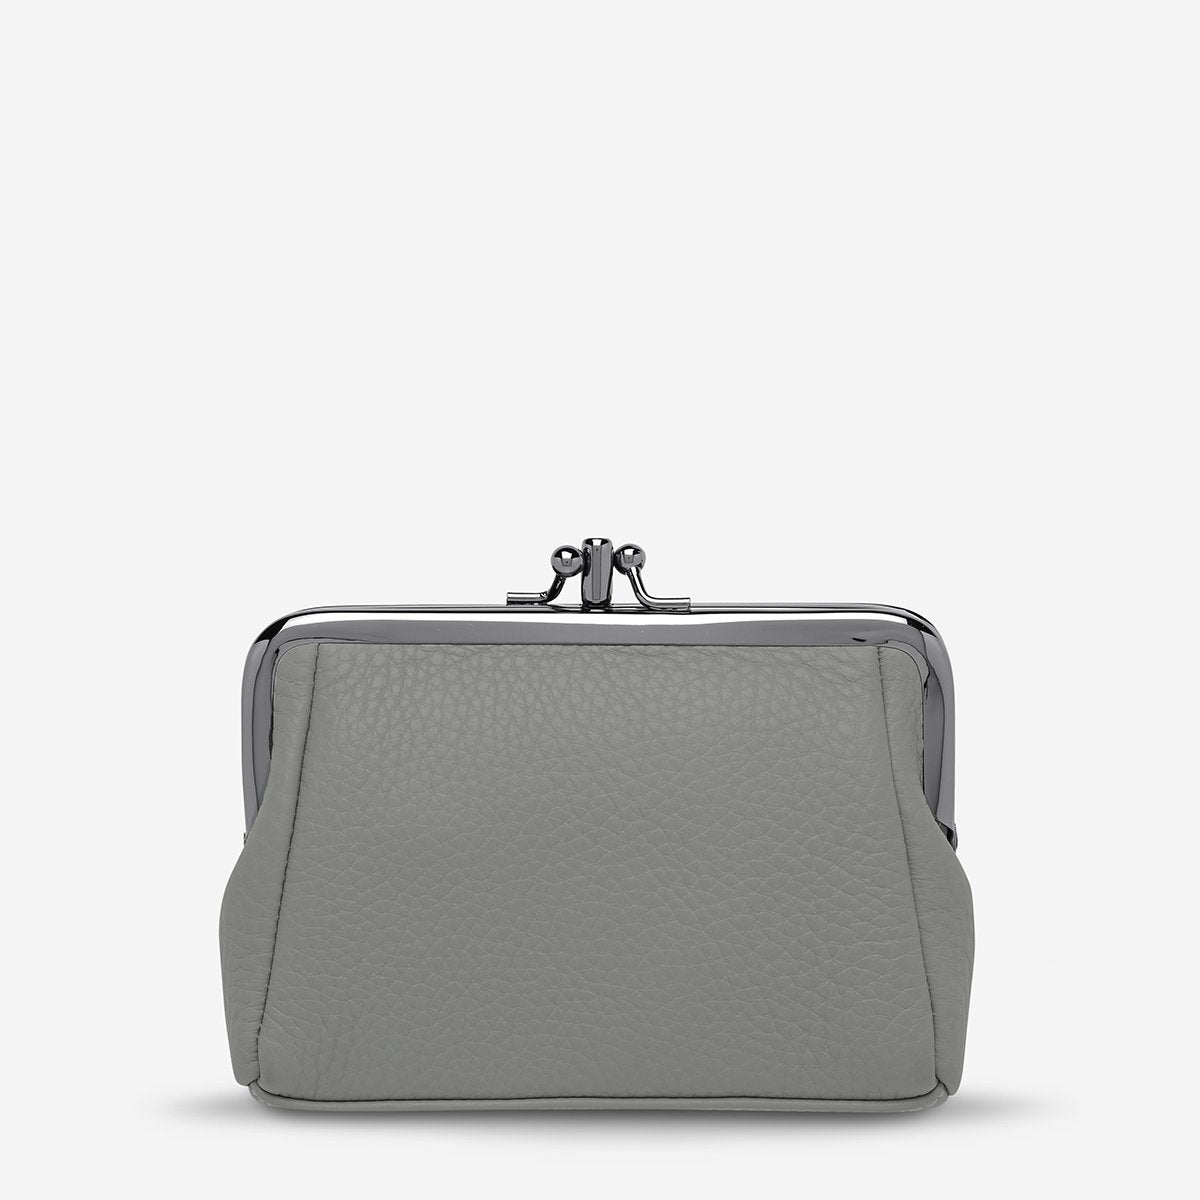 Volatile Purse - Light Grey